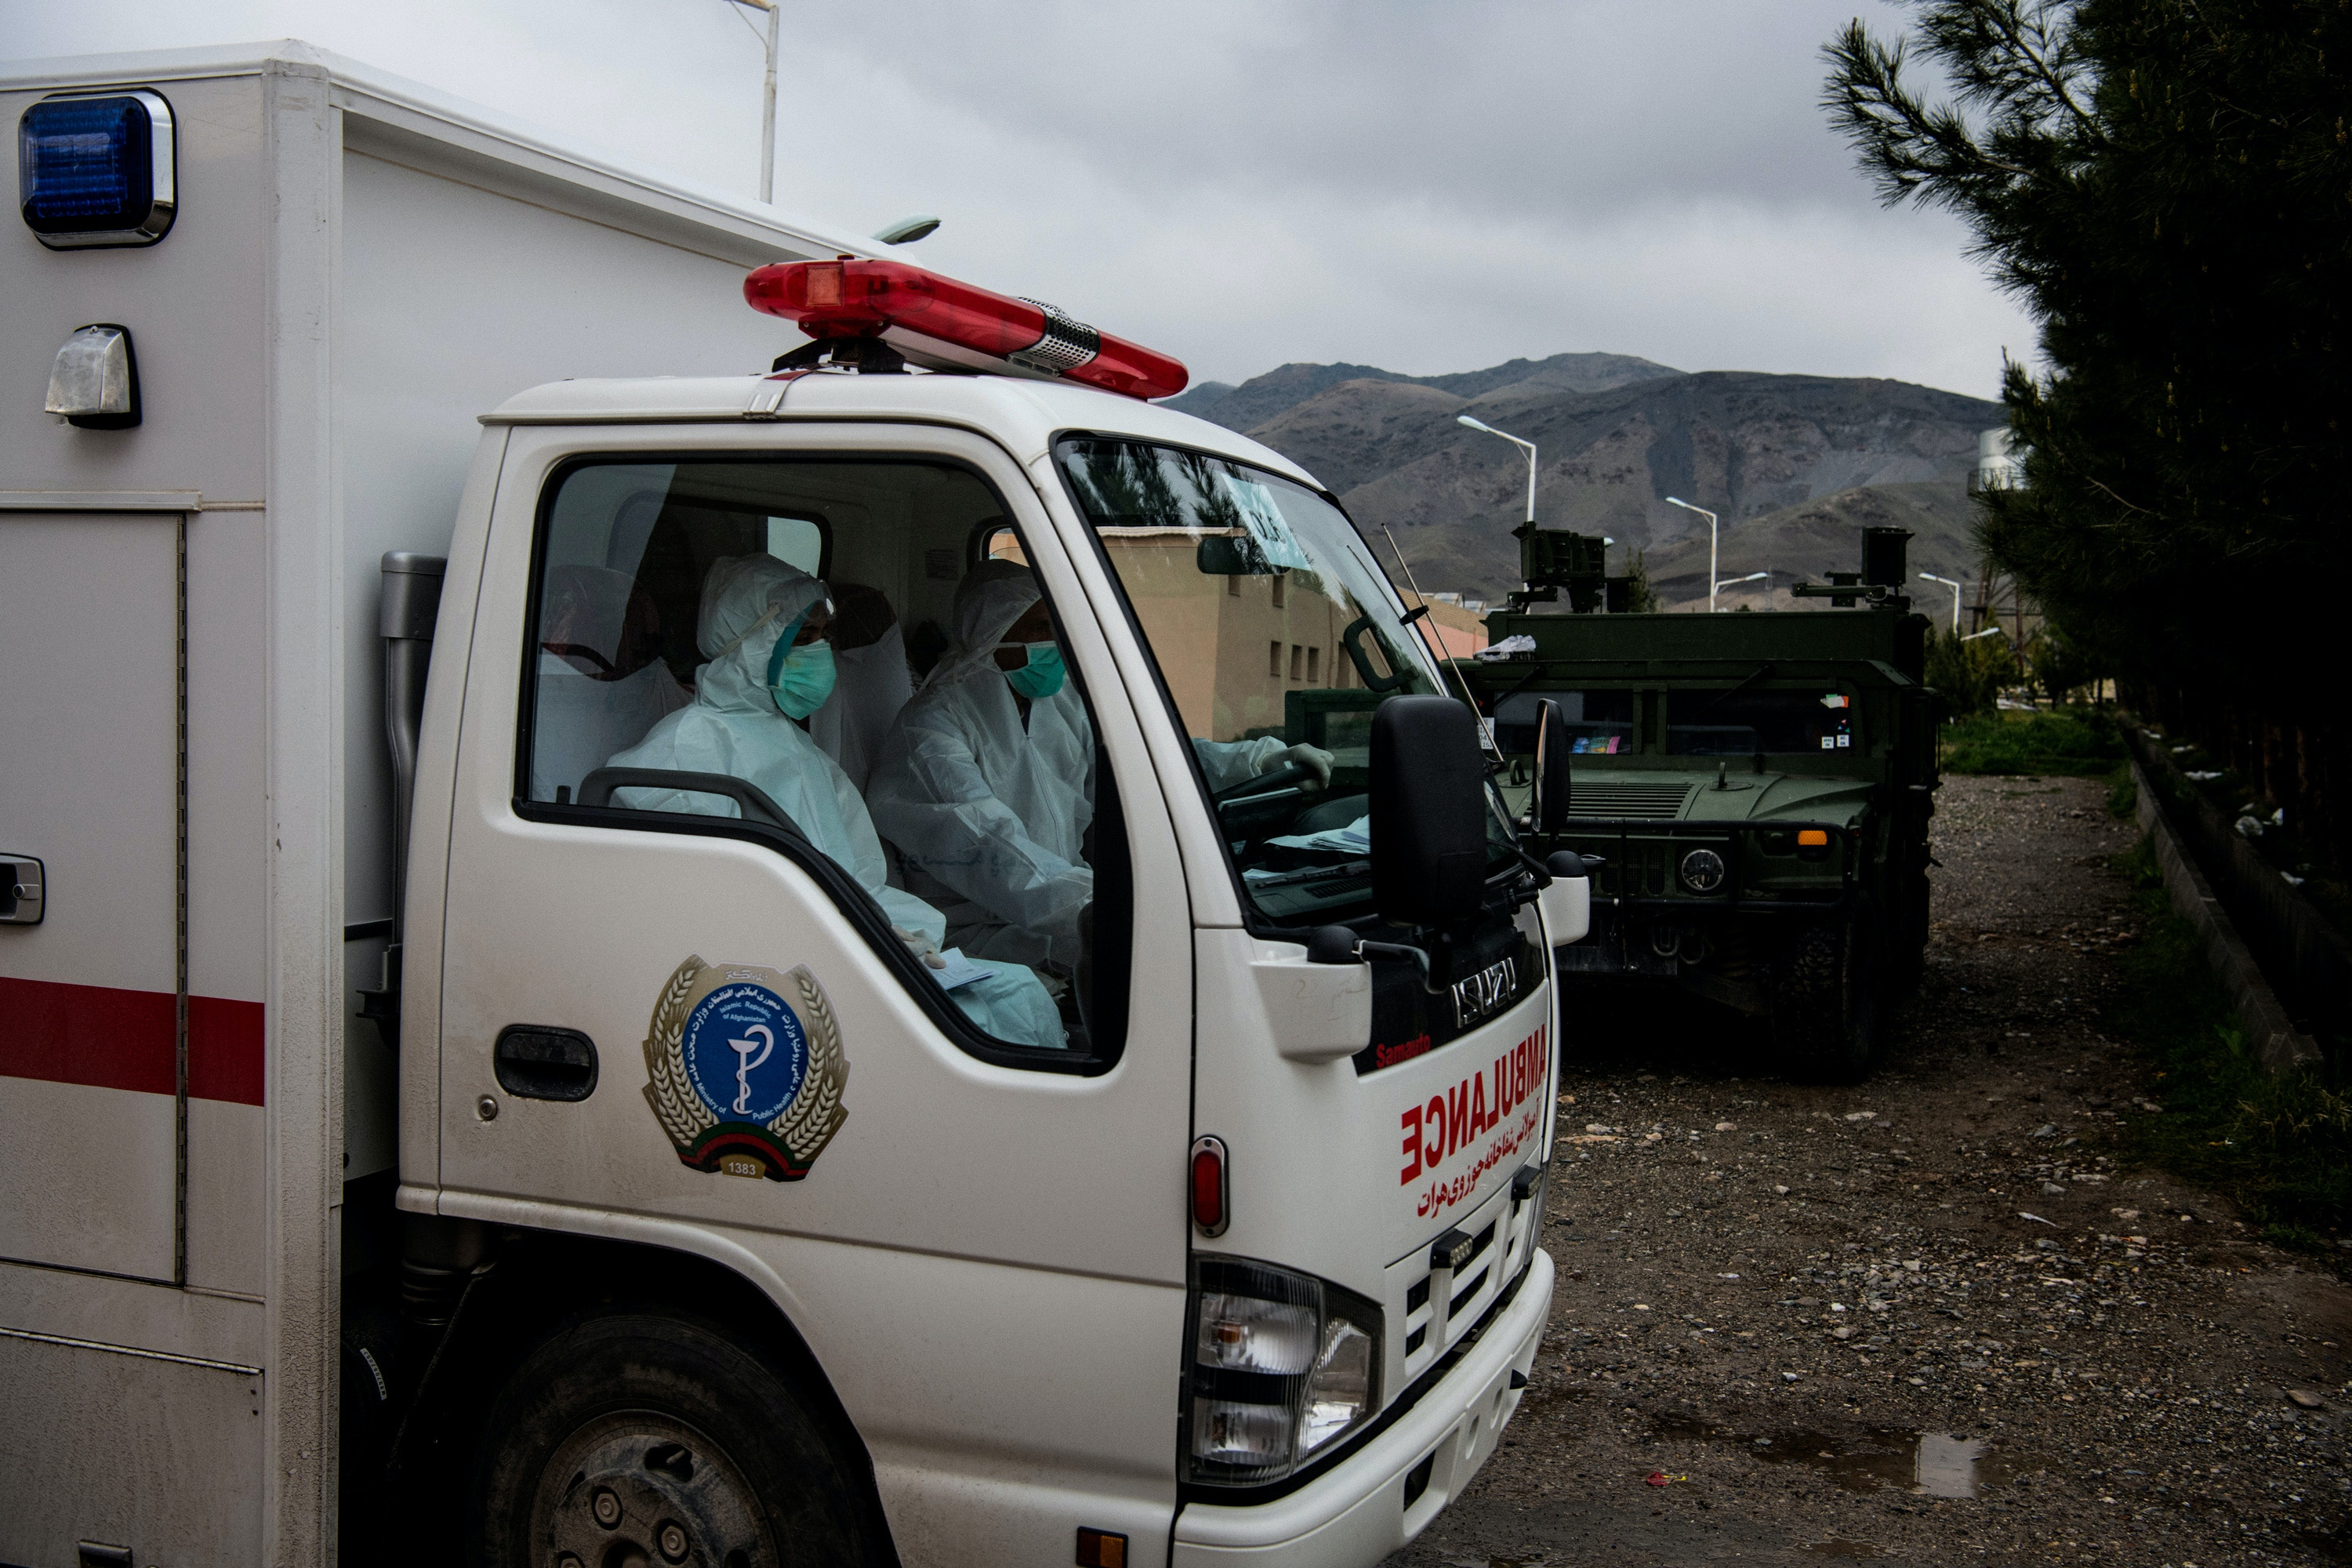 An ambulance, it's driver and passenger wearing head-to-toe protective equipment, departs a paediatric hospital which was recently repurposed as Herat's primary isolation facility for coronavirus in the early days of the coronavirus outbreak in Afghanistan. On this day, the country had an official count of 71 positive coronavirus cases.